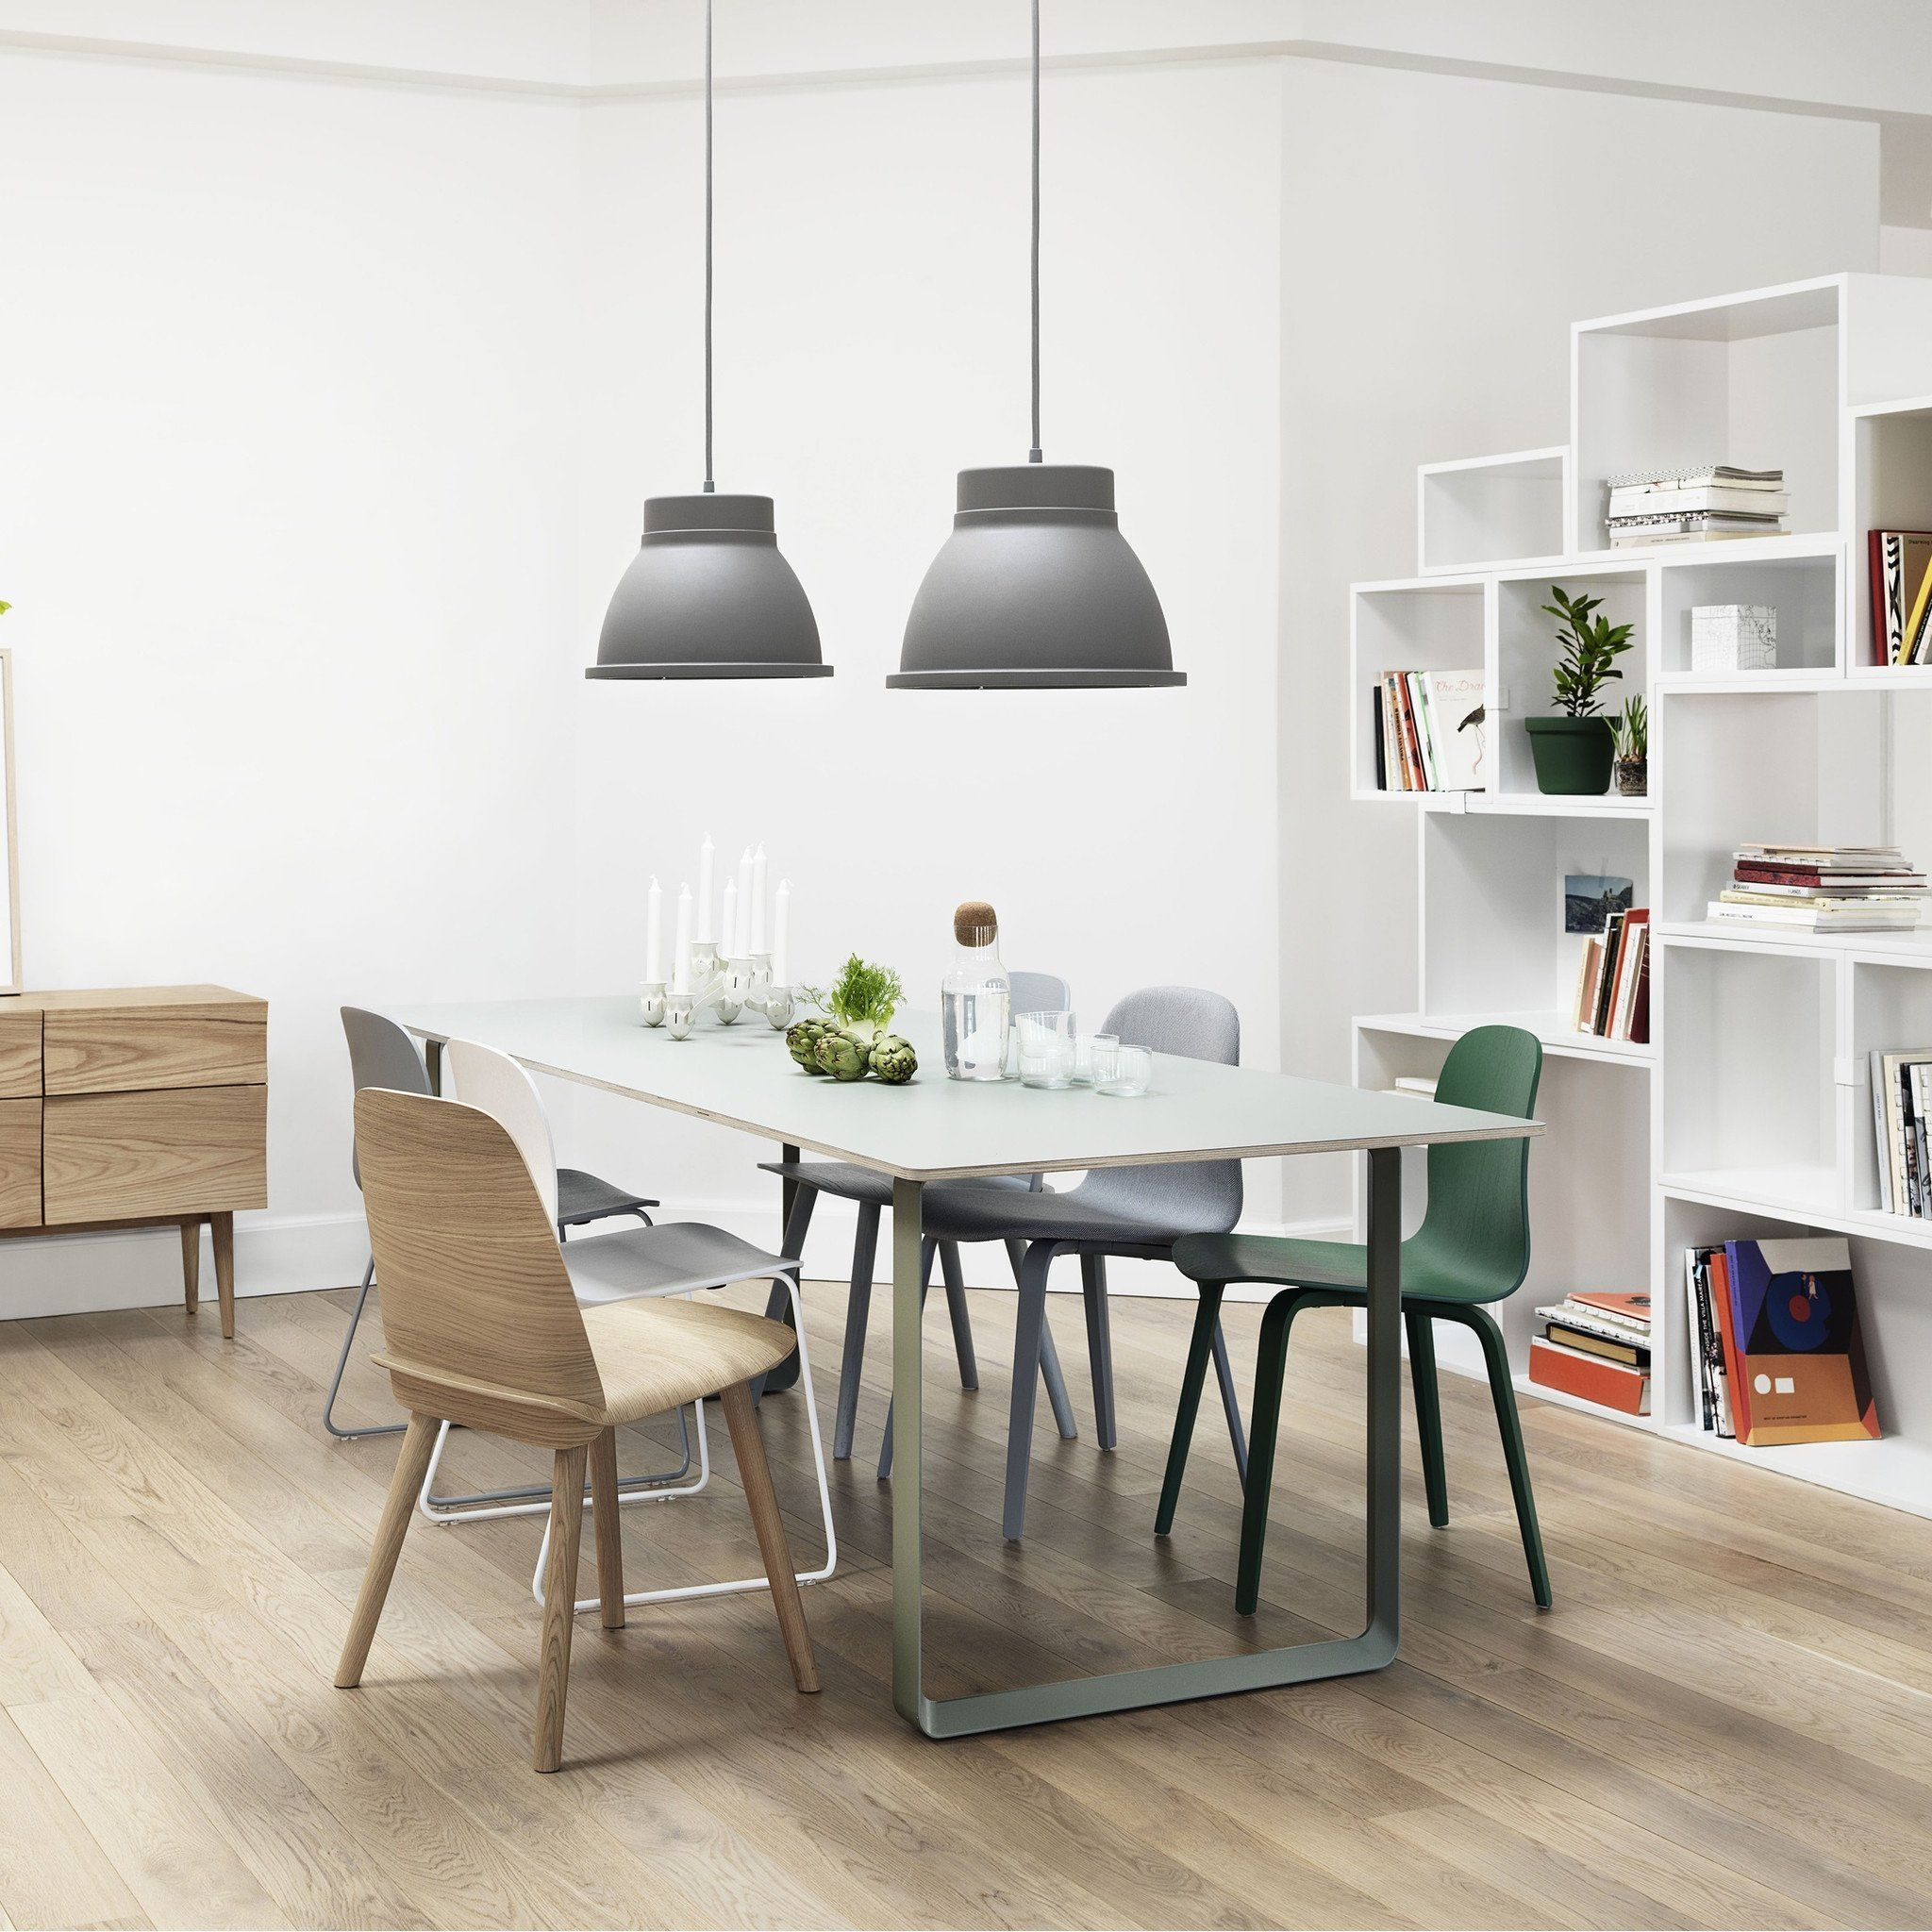 The Nerd Chair Is A Modern Nordic Take On The Iconic All Wood Chair That Effortlessly Dining Room Design Scandinavian Interior Design Scandinavian Dining Room